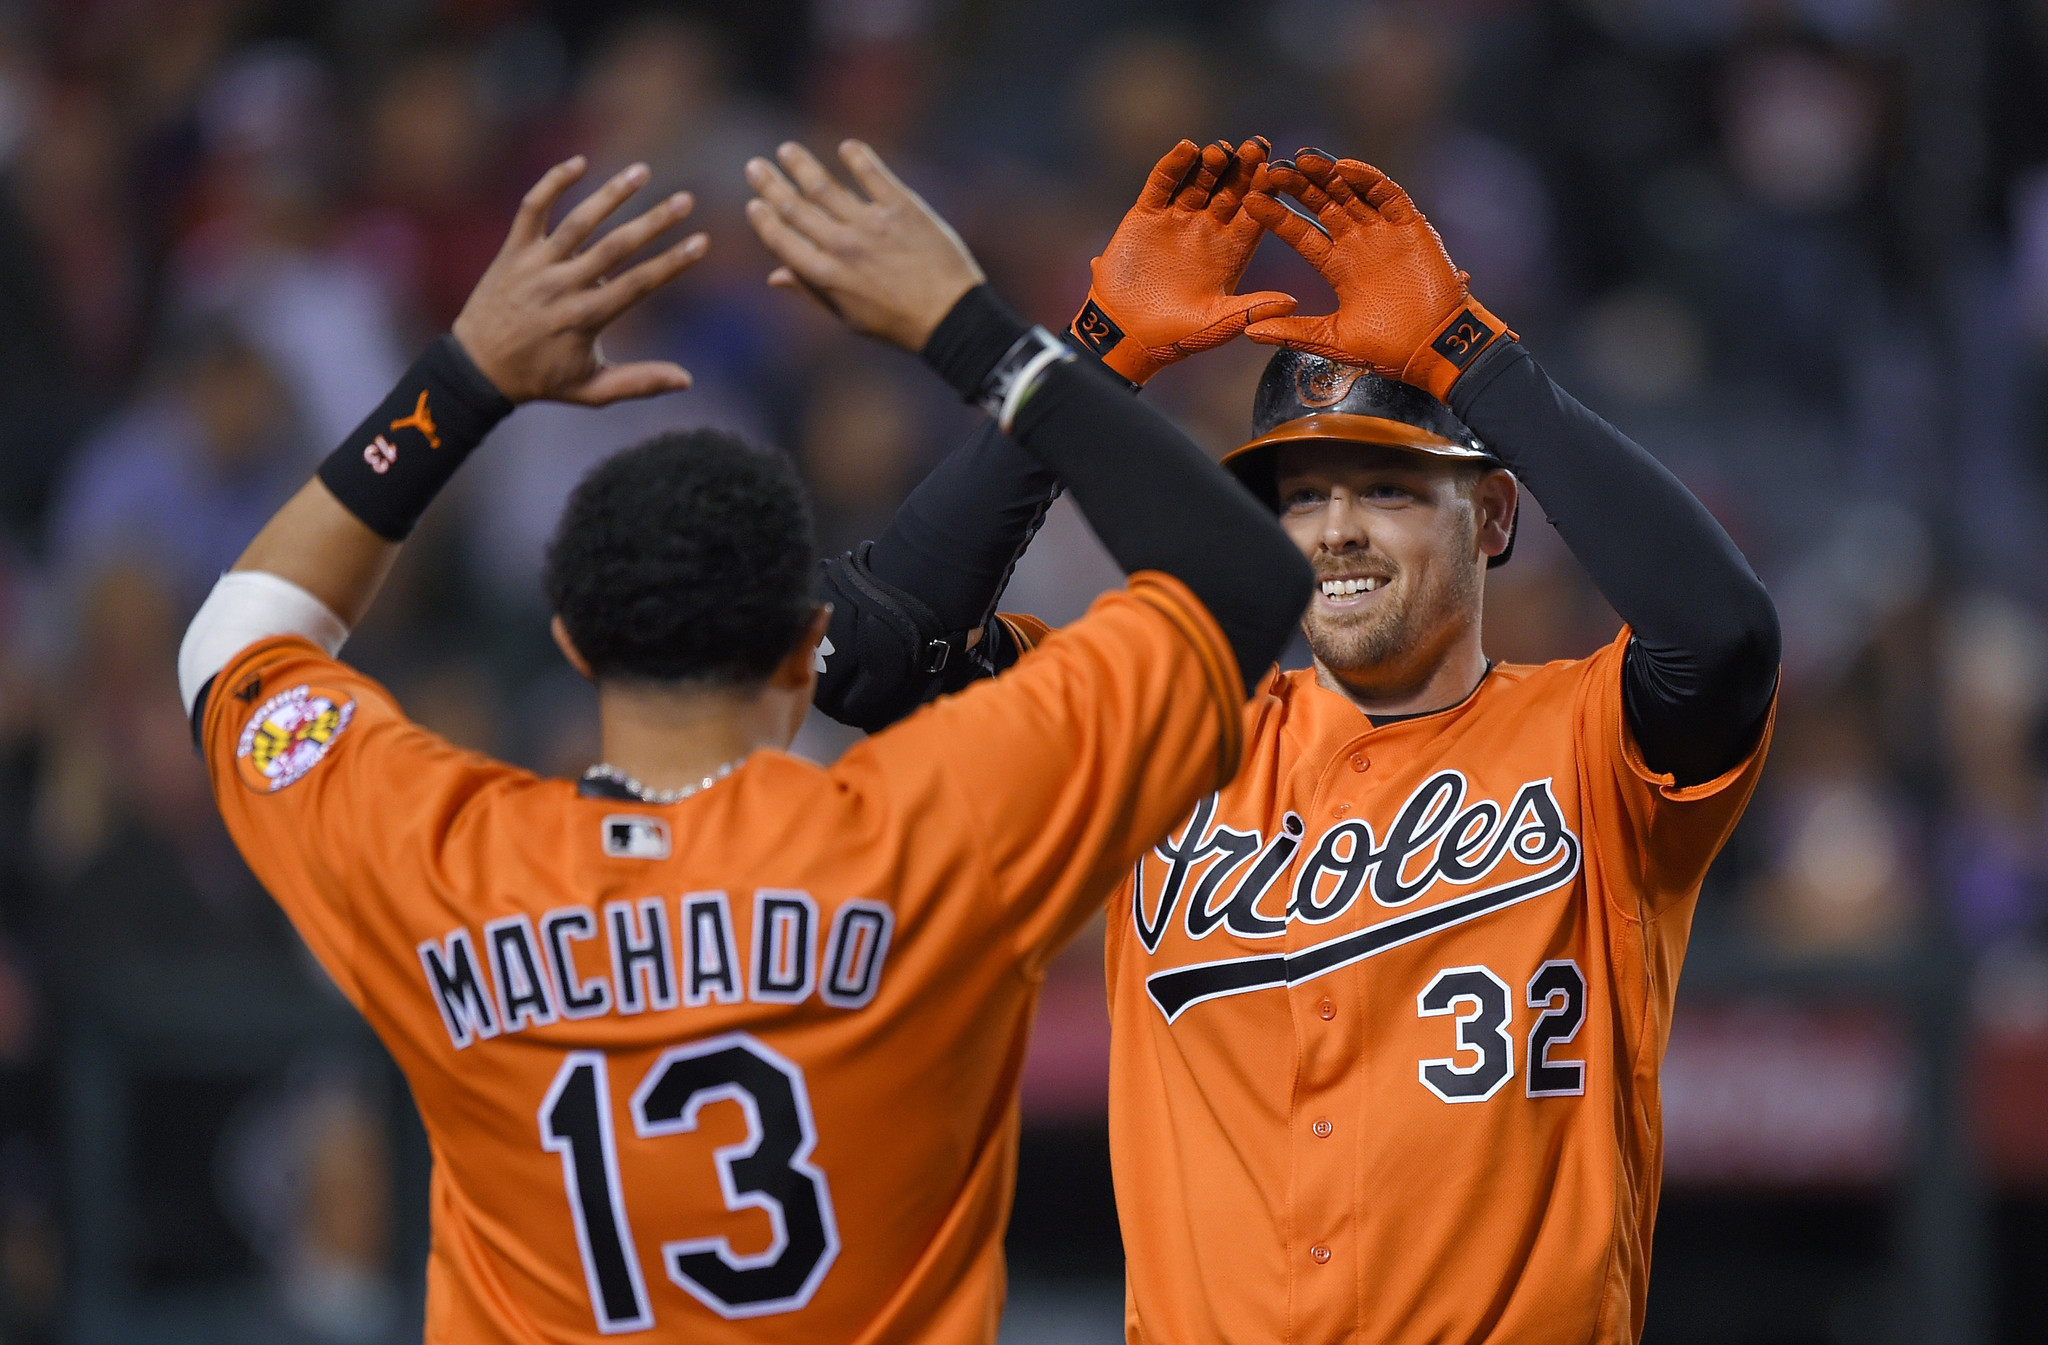 Bal-baltimore-sun-s-mlb-power-rankings-2-for-the-week-of-may-23-20160524